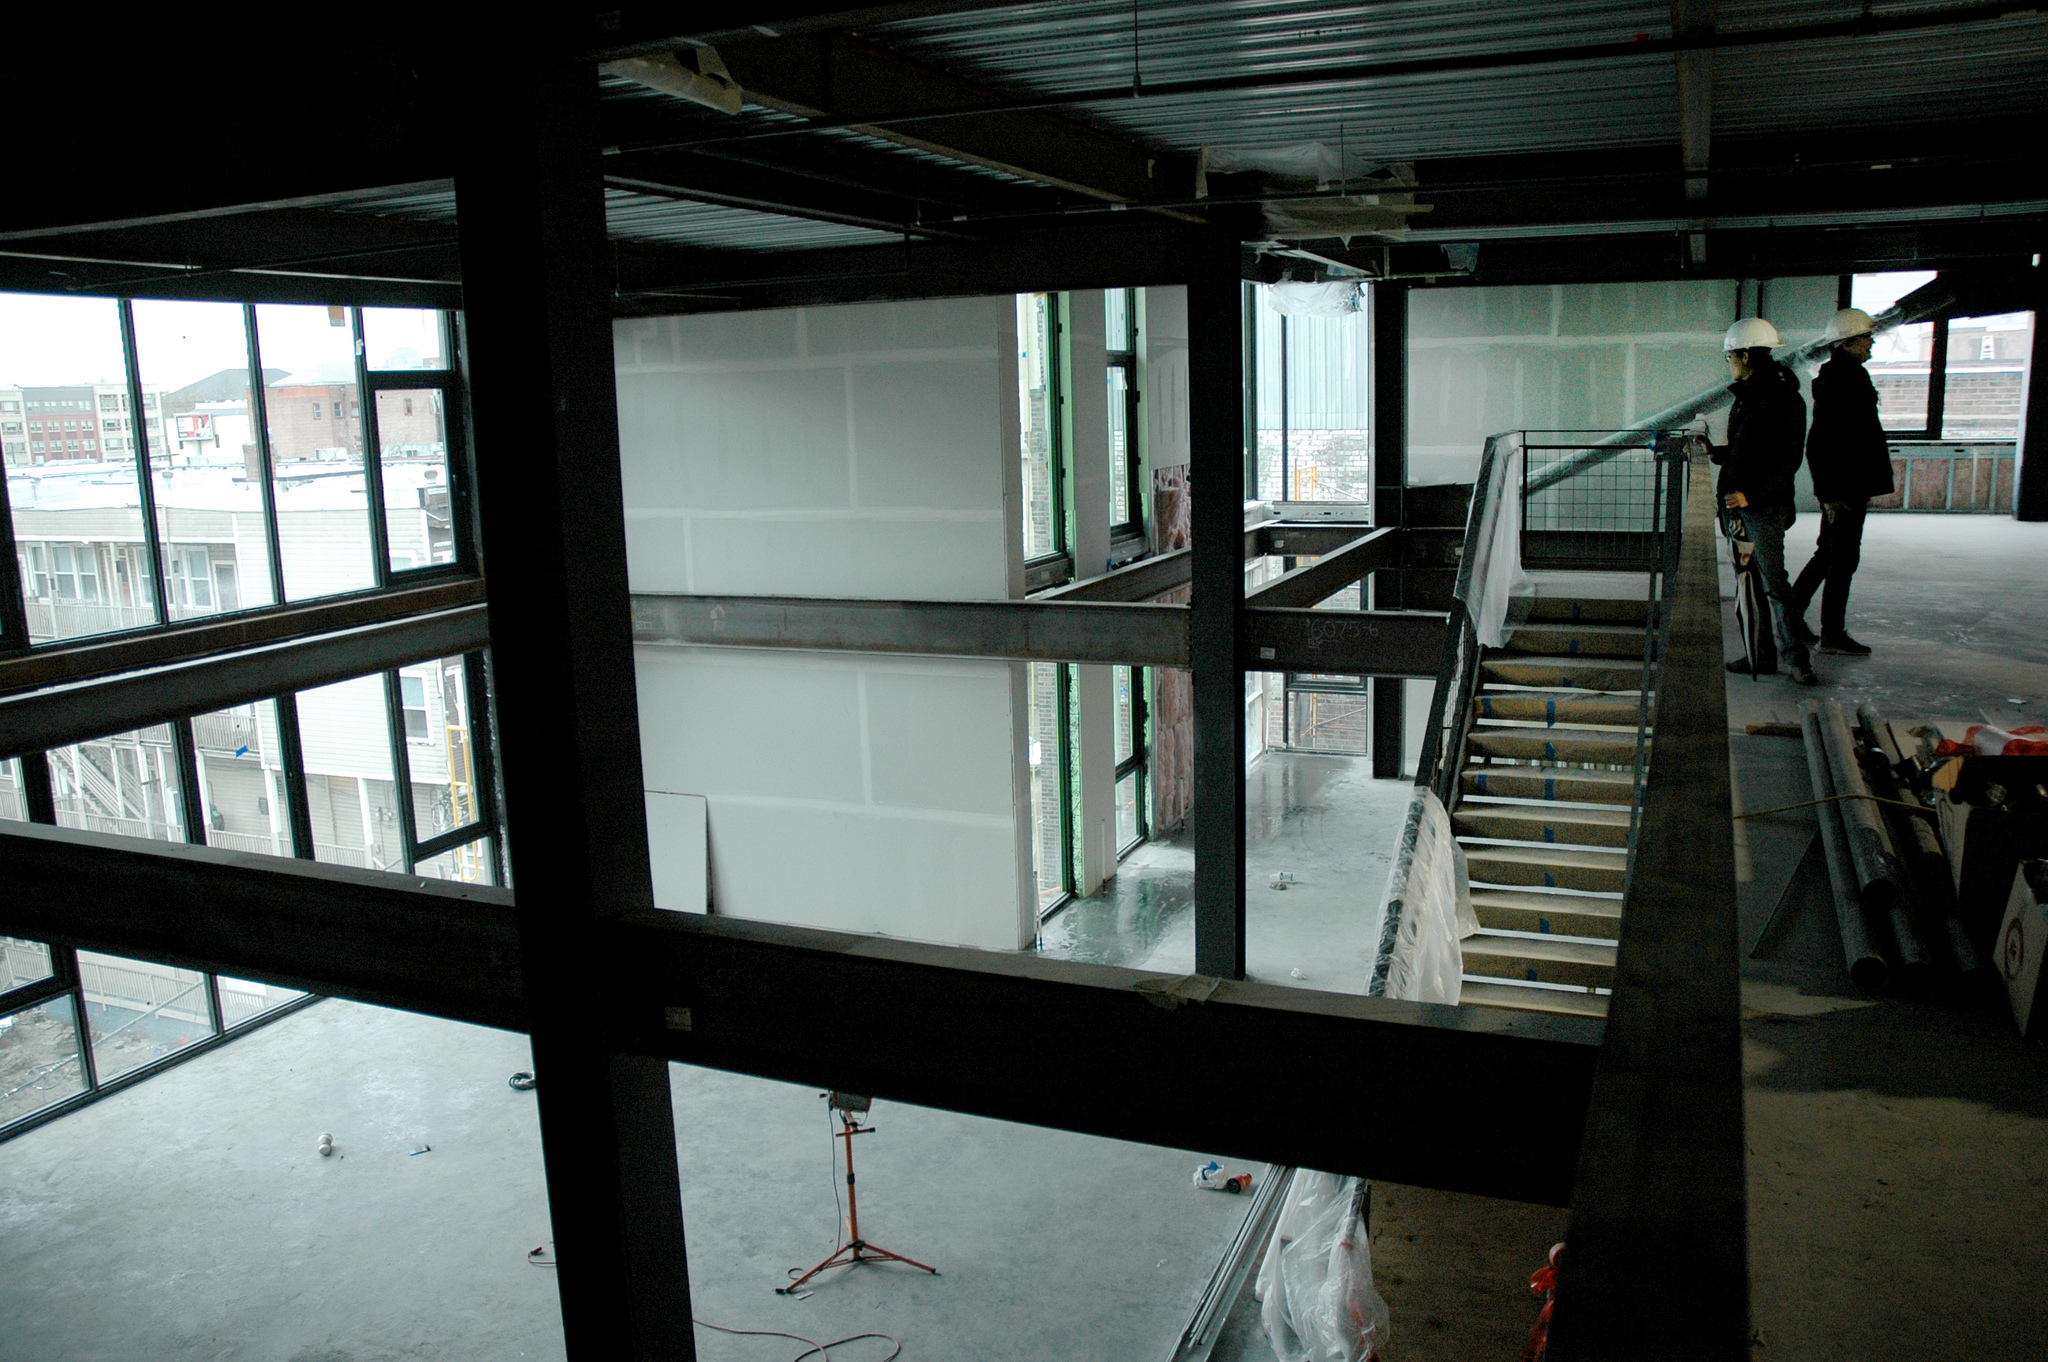 The mezzanine levels have double height spaces given to offices in both levels.